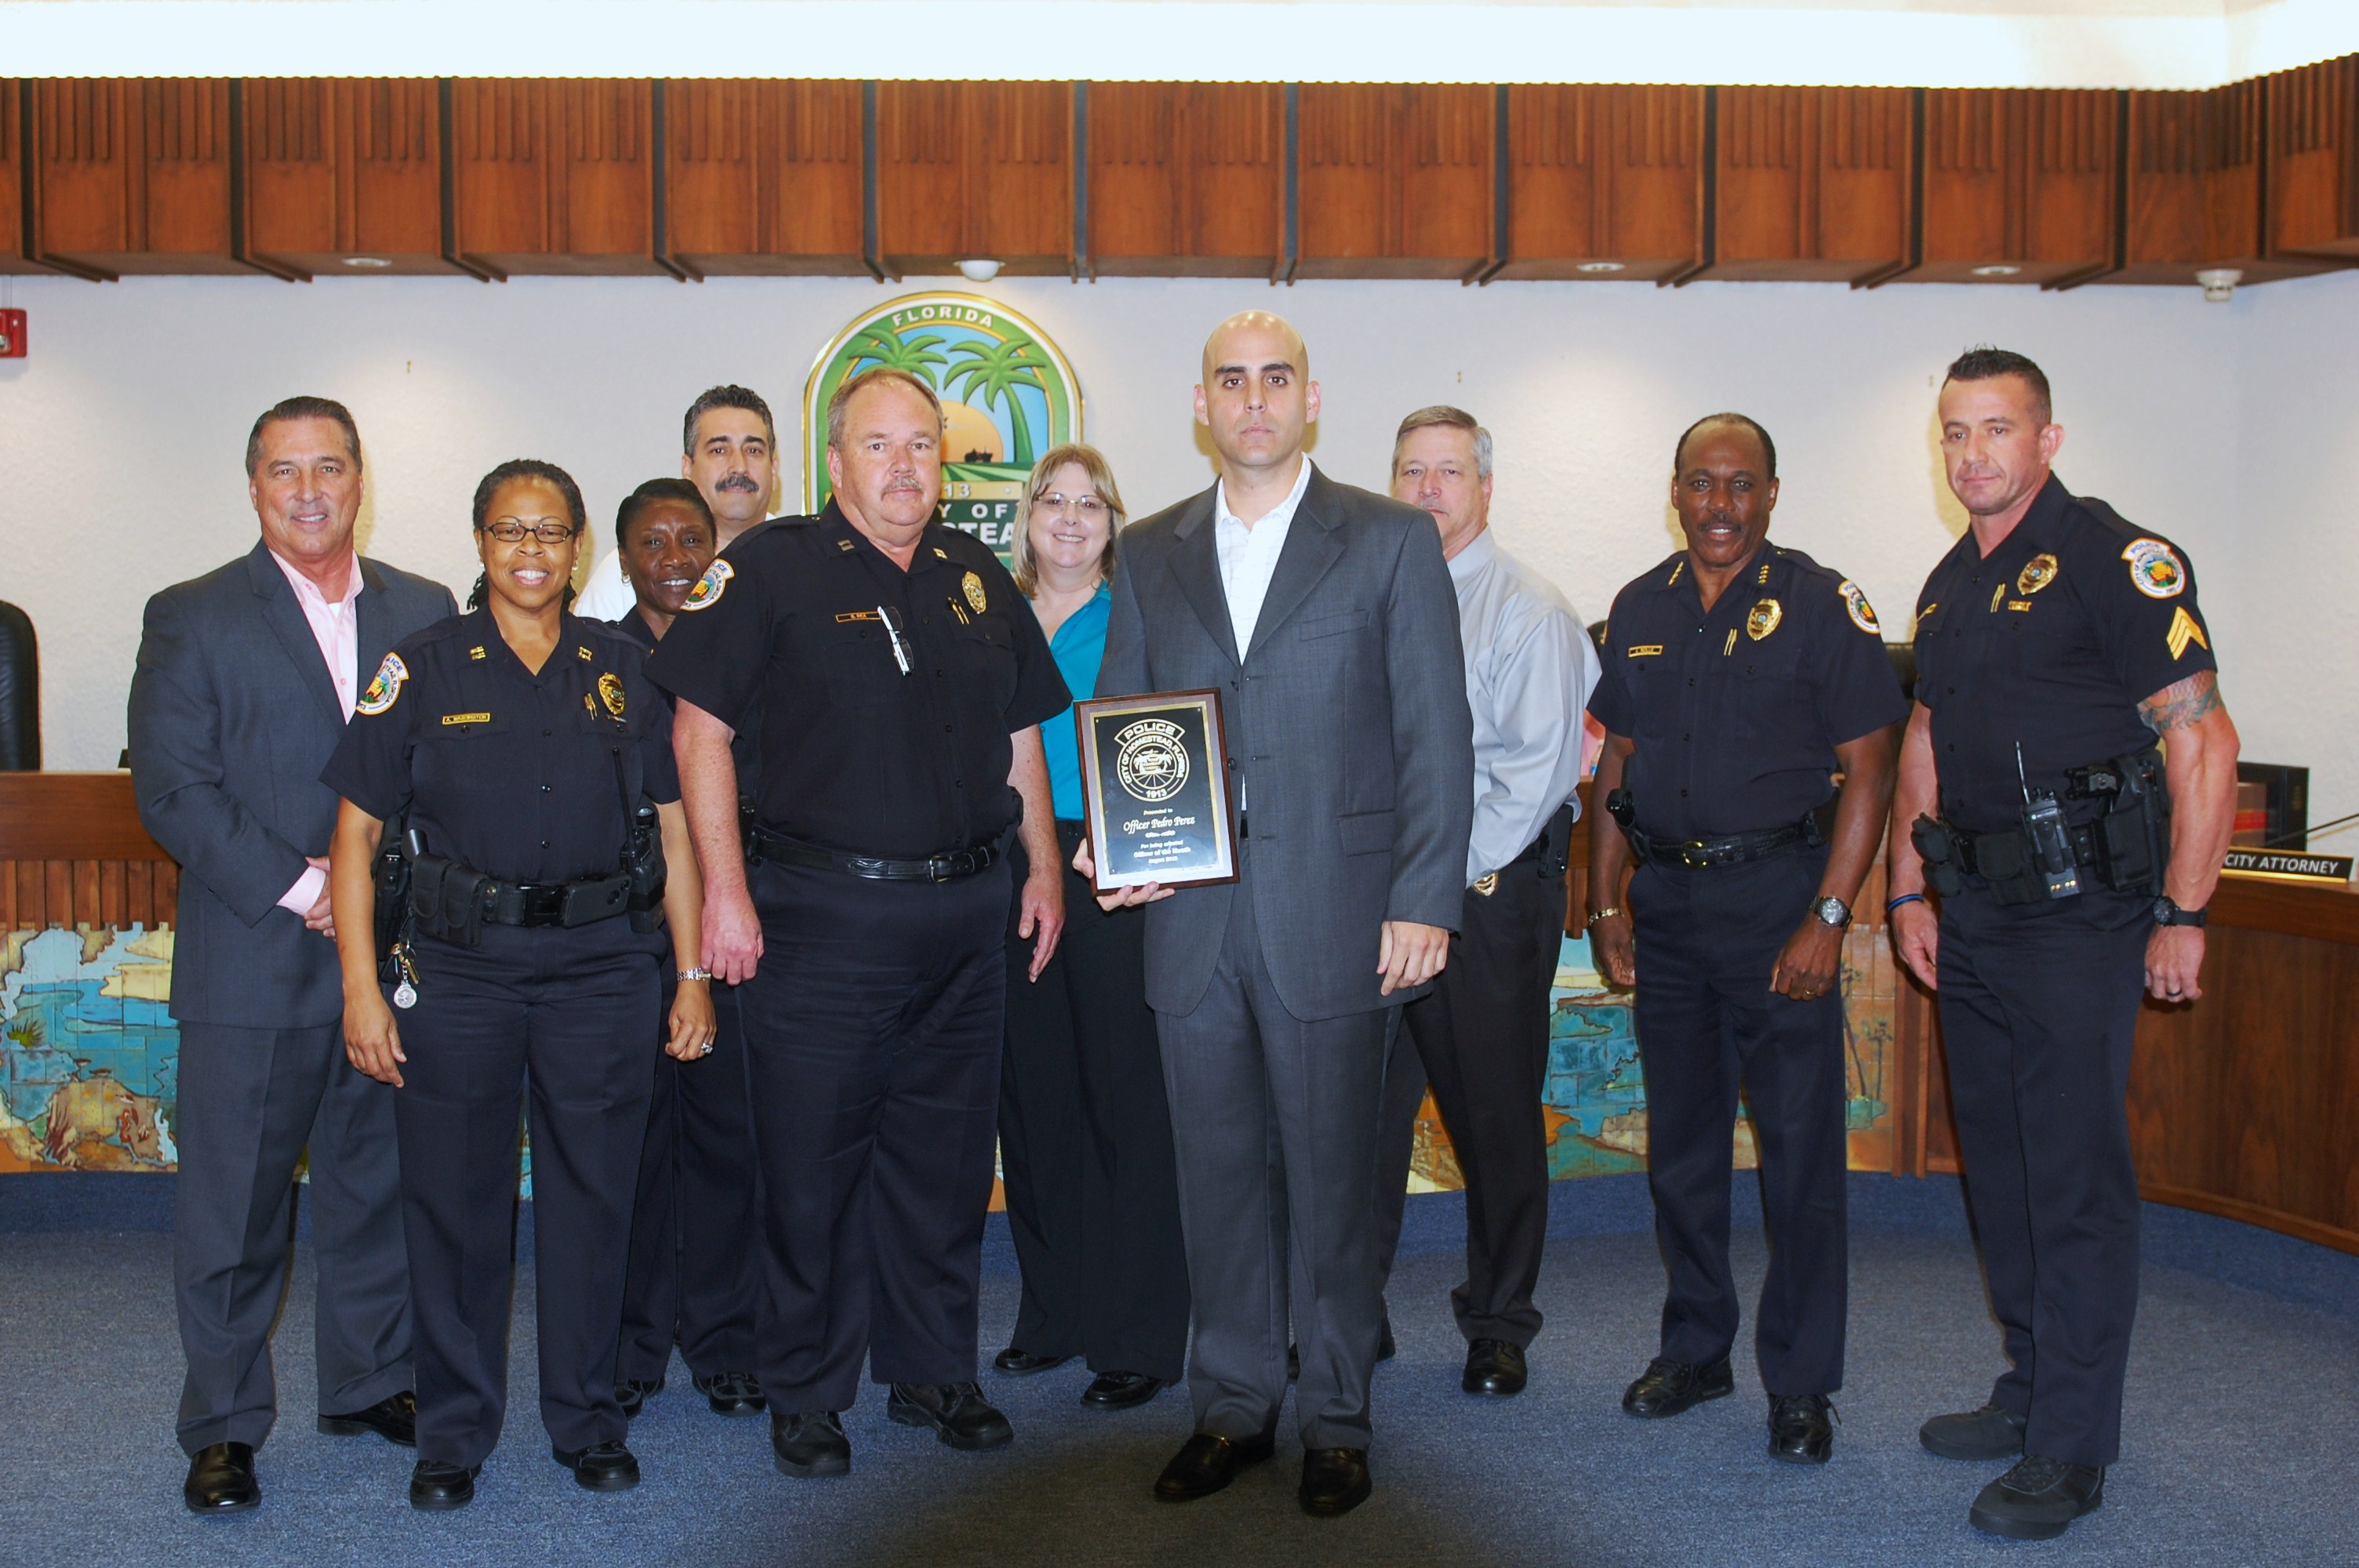 Officer of the Month Pete Perez